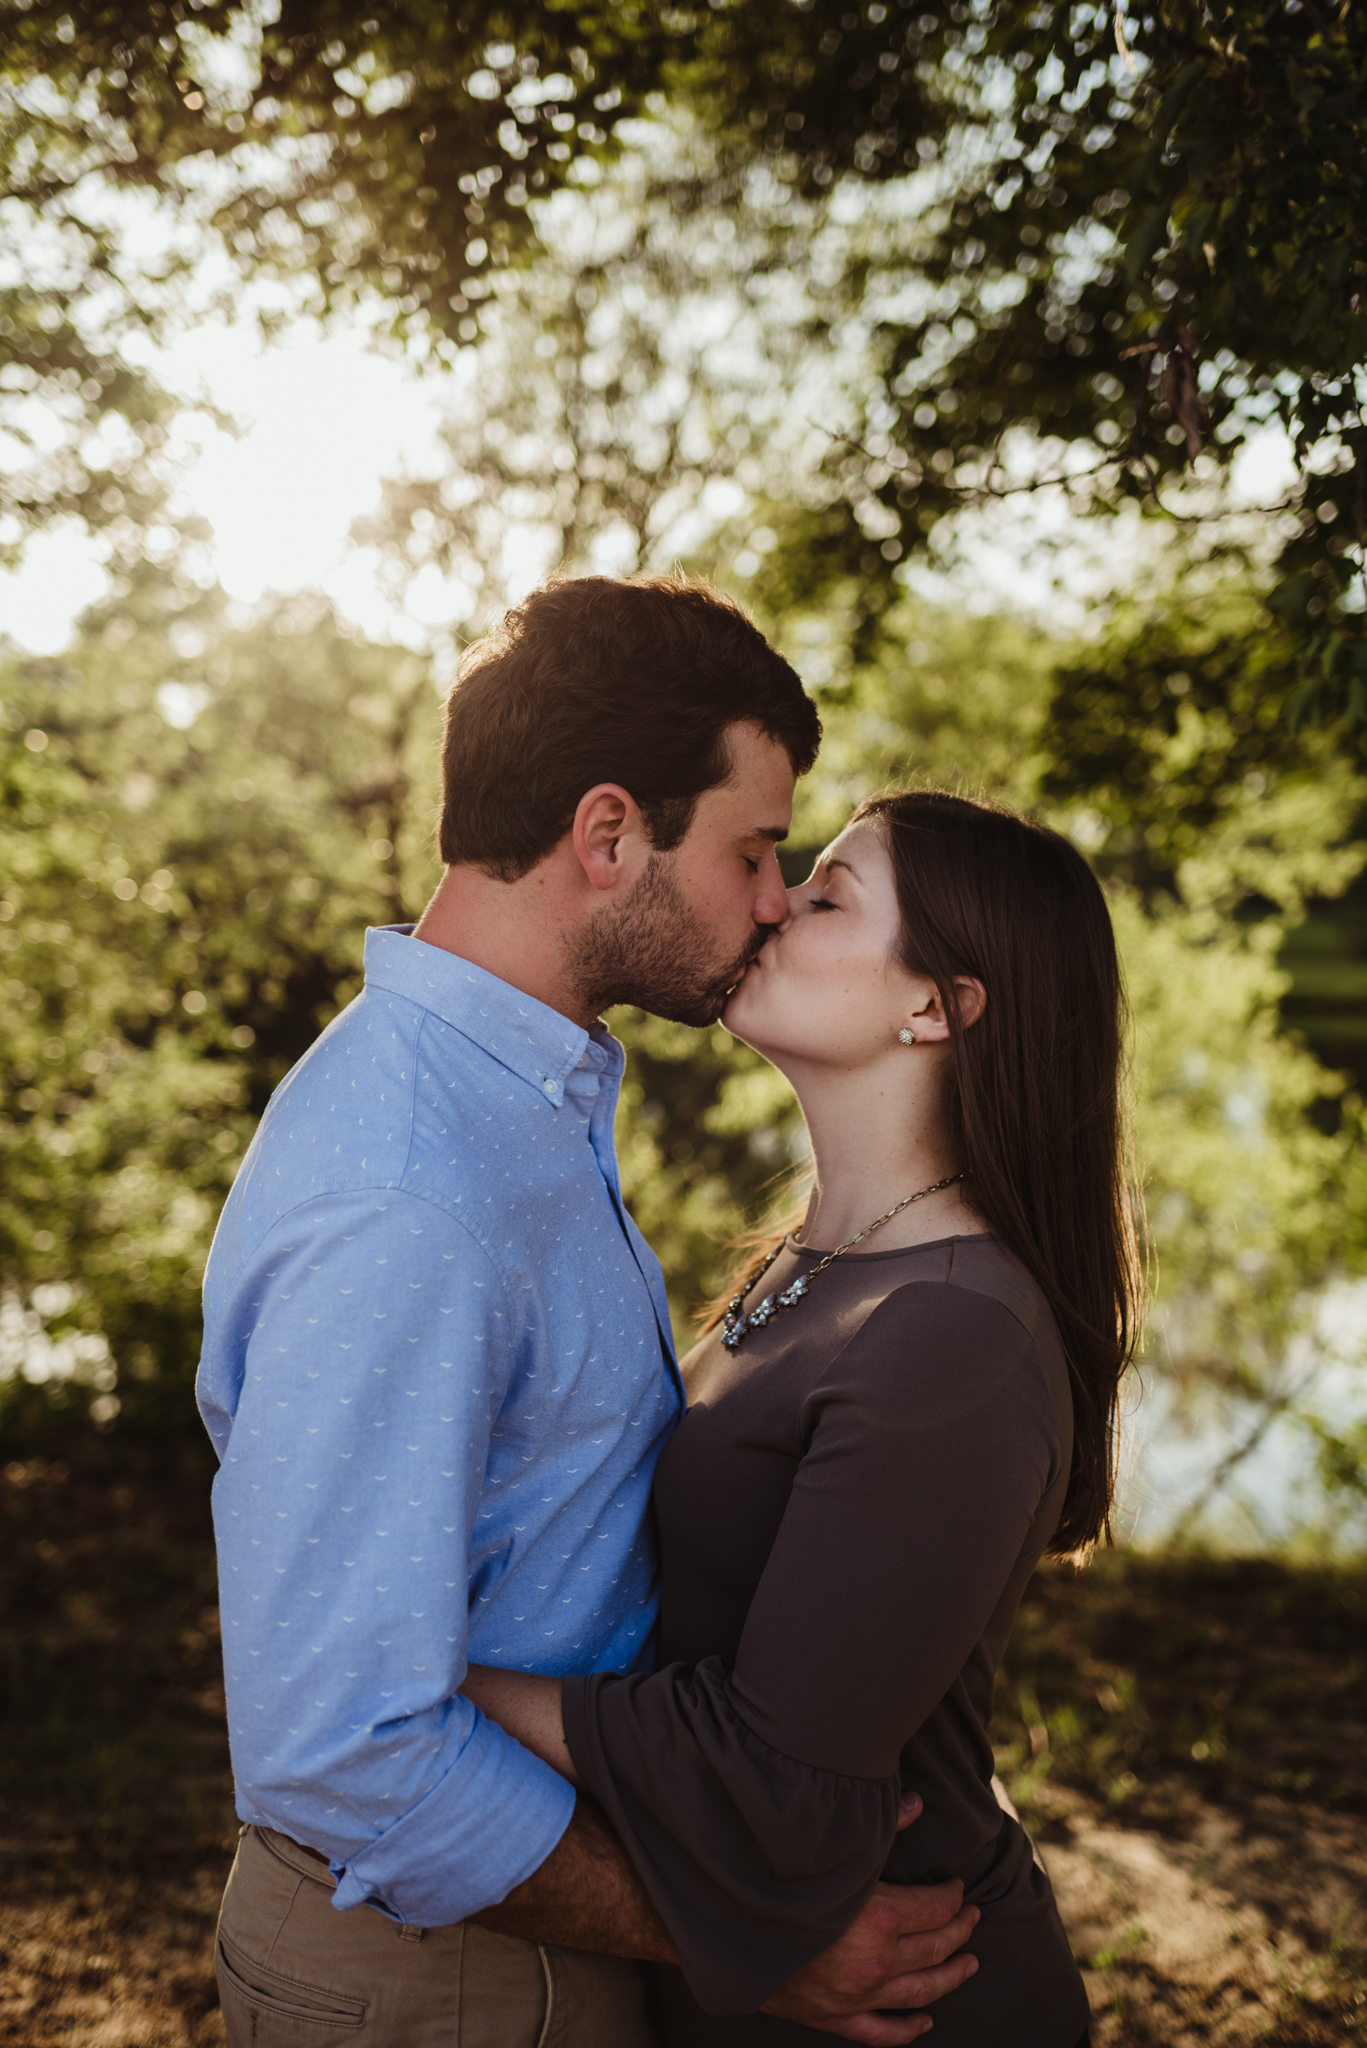 The bride and groom to be kiss under the sunset for their engagement pictures with Rose Trail Images at their family farm in Benson, North Carolina.